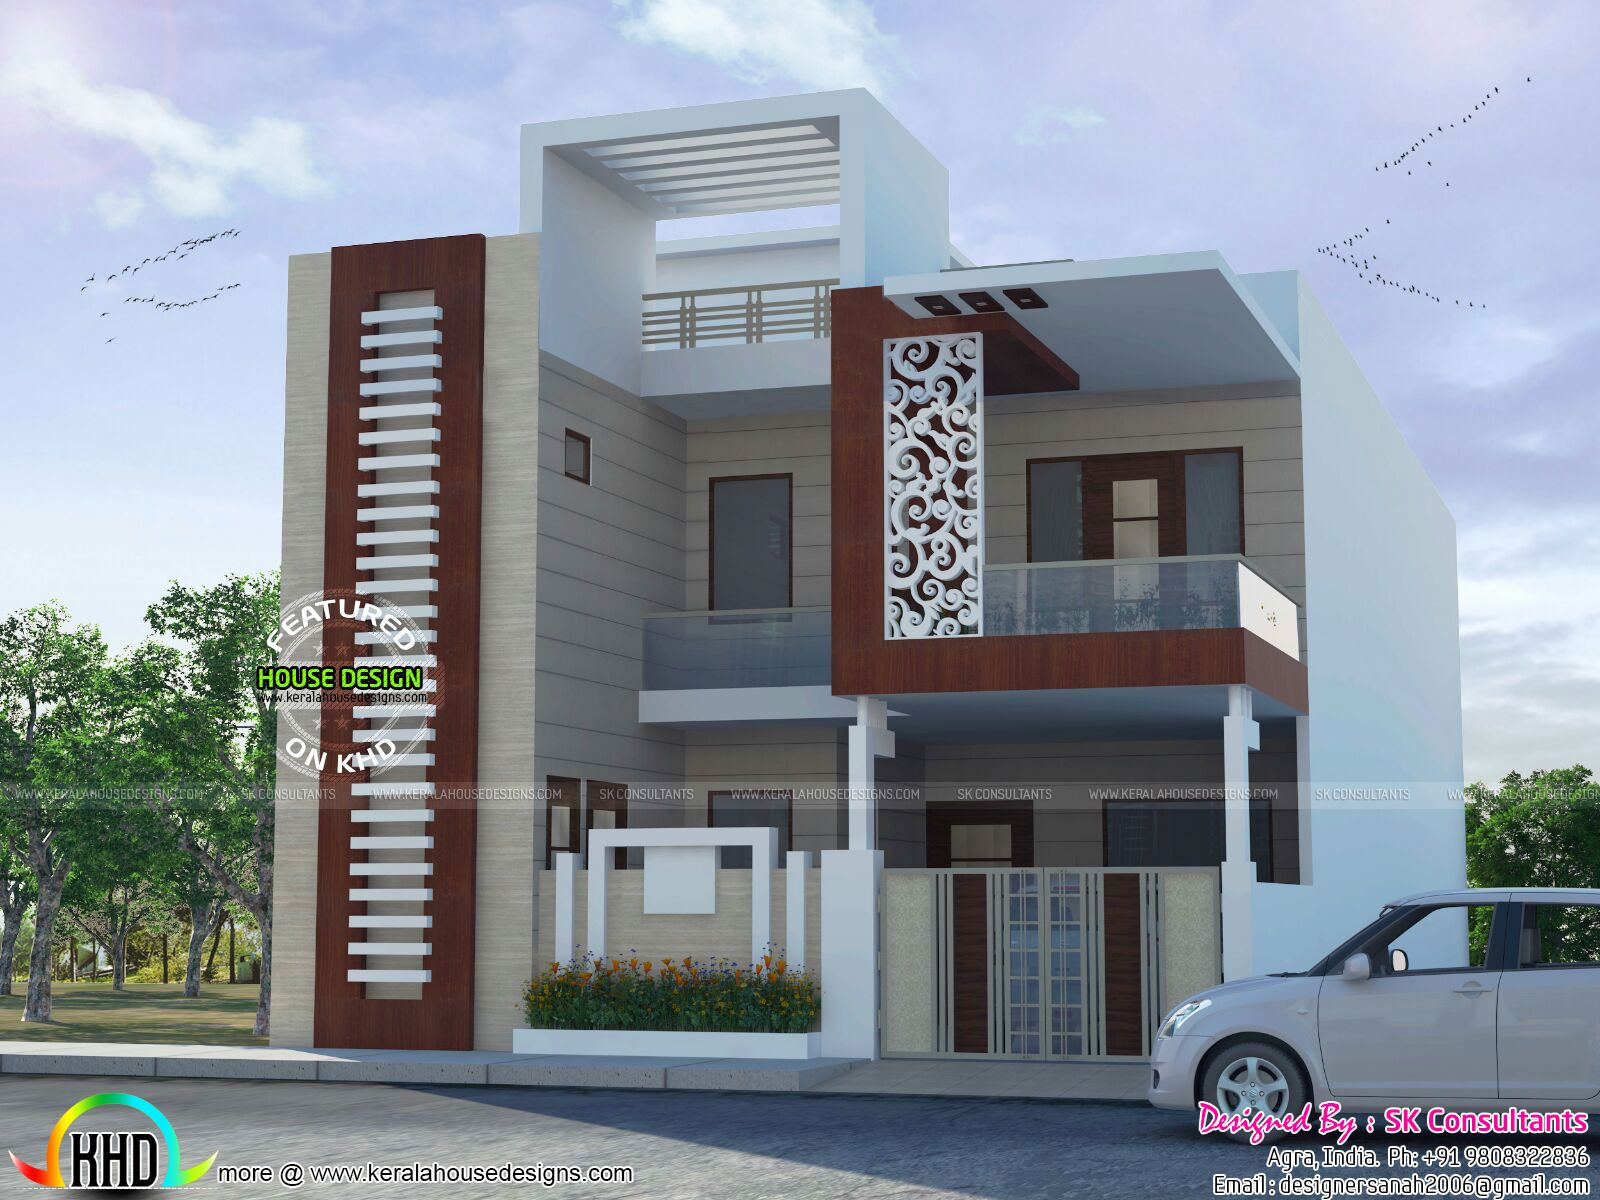 Decorative house plan by SK Consultants (With images ...